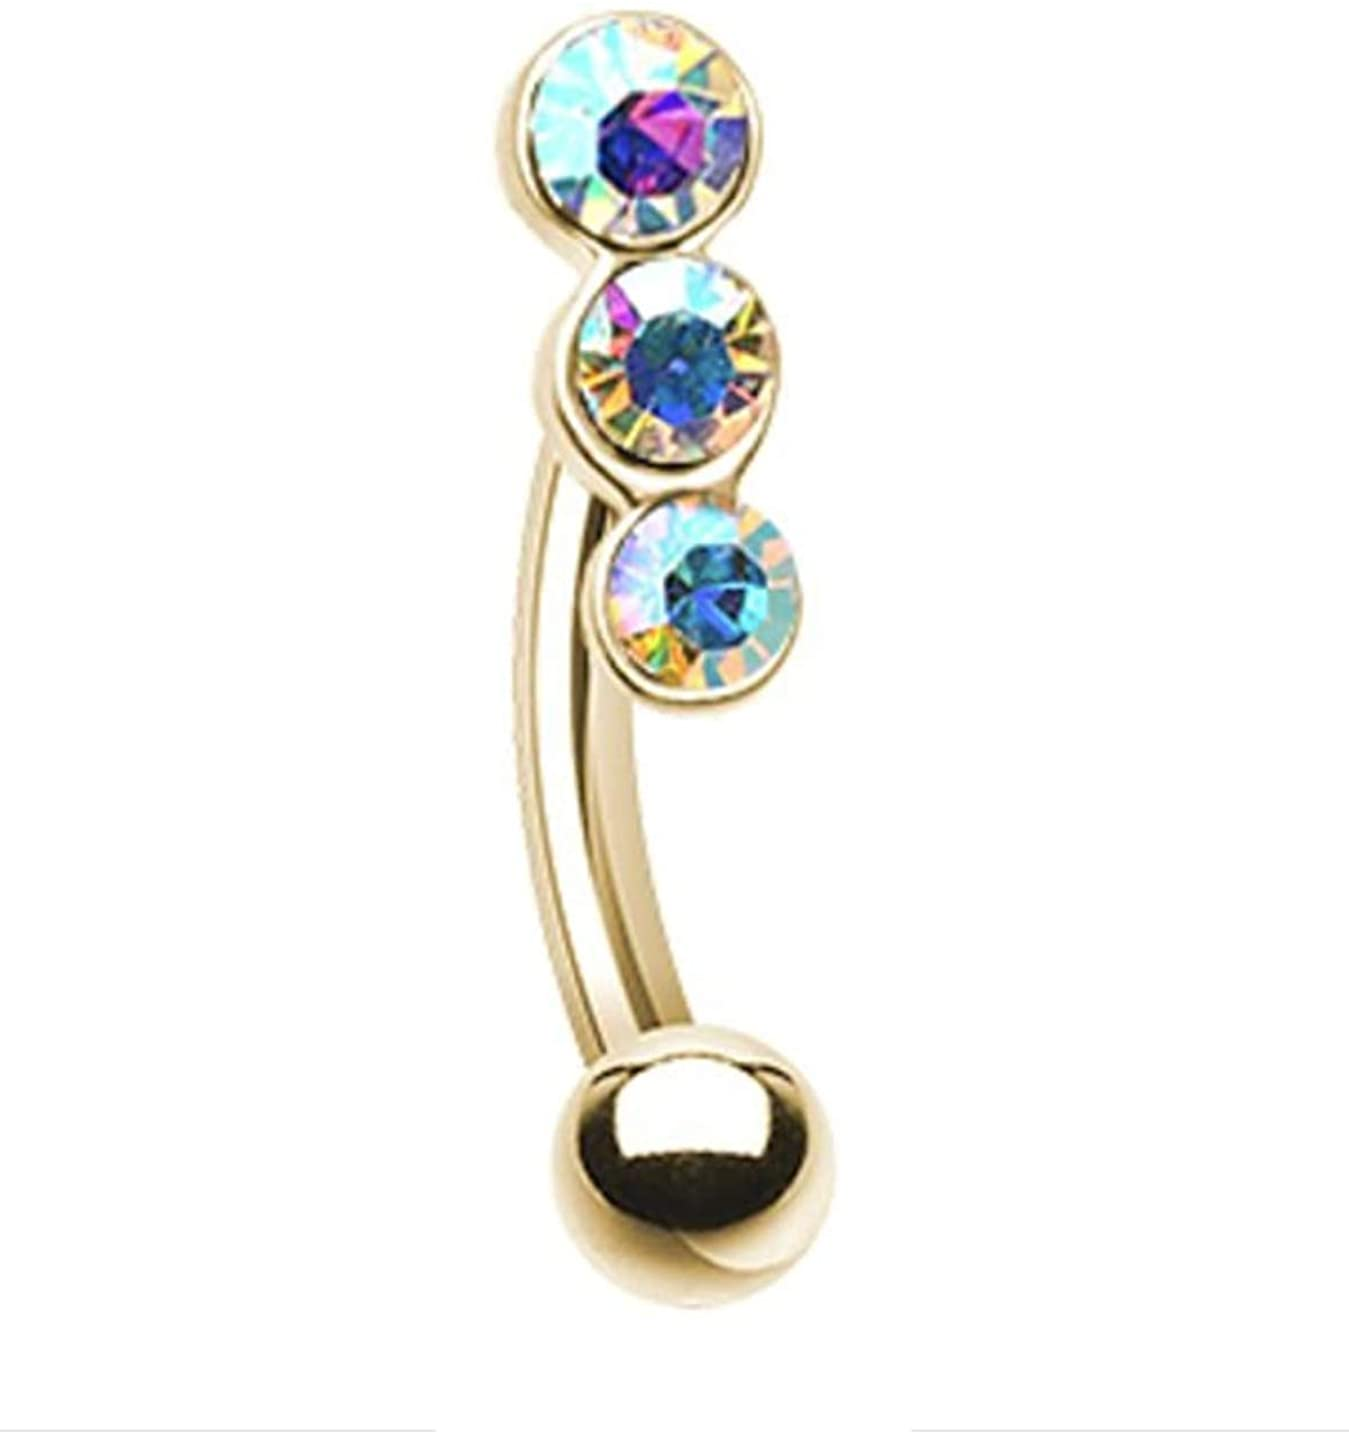 Amelia Fashion 16 Gauge Golden Triple Linear Gem Curved Barbell/Eyebrow Ring 316L Surgical Stainelss Steel